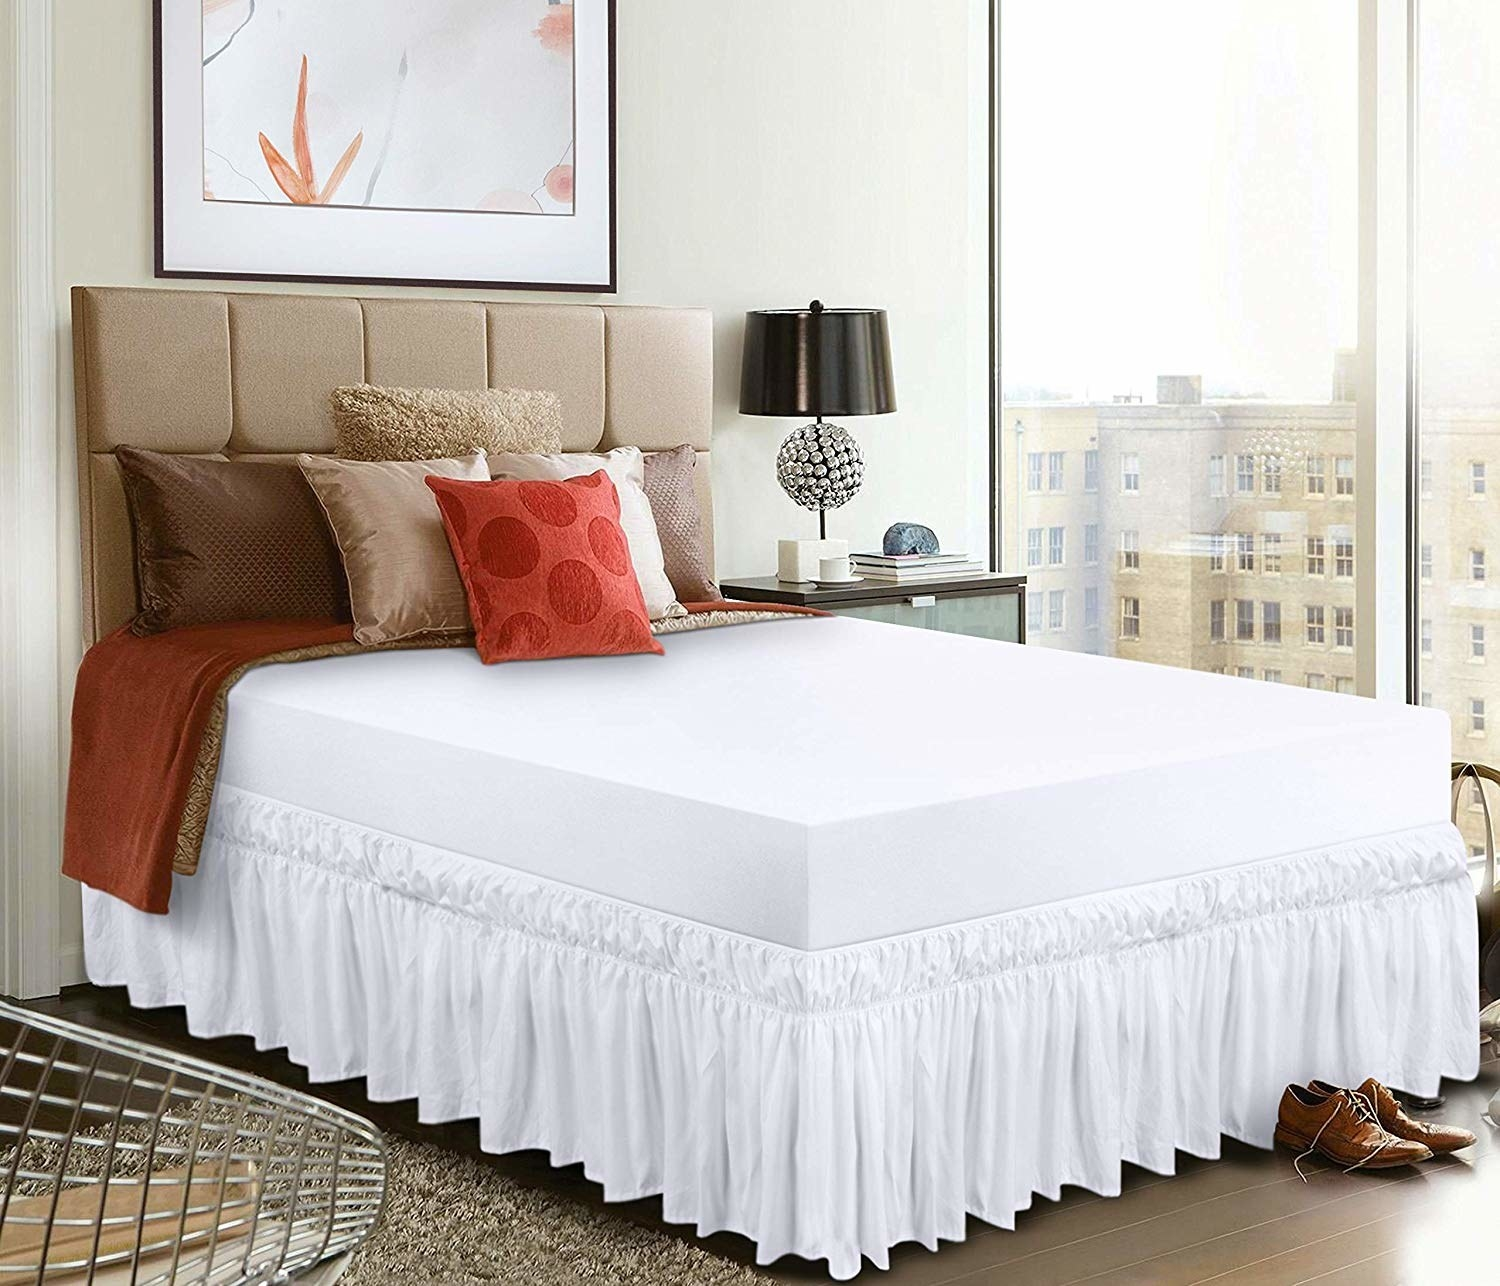 A bed with white sheets and a white dust ruffle all along its edges